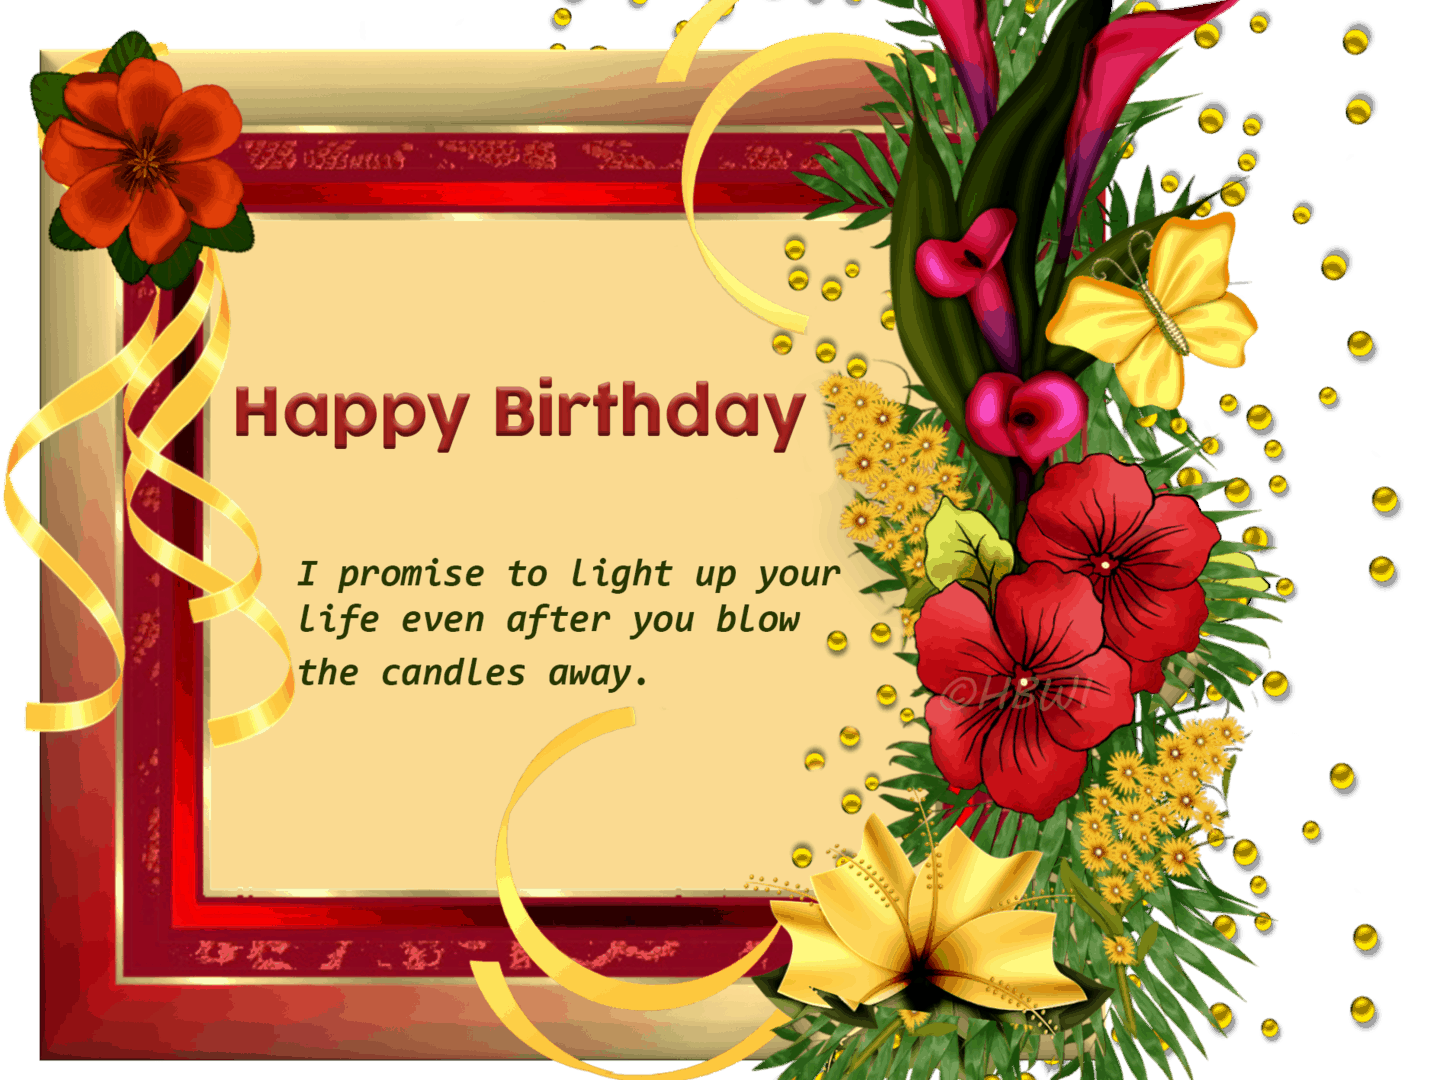 All new exclusive 25 hd happy birthday wishes images 2018 happy exclusive happy birthday wishes cards with flowers m4hsunfo